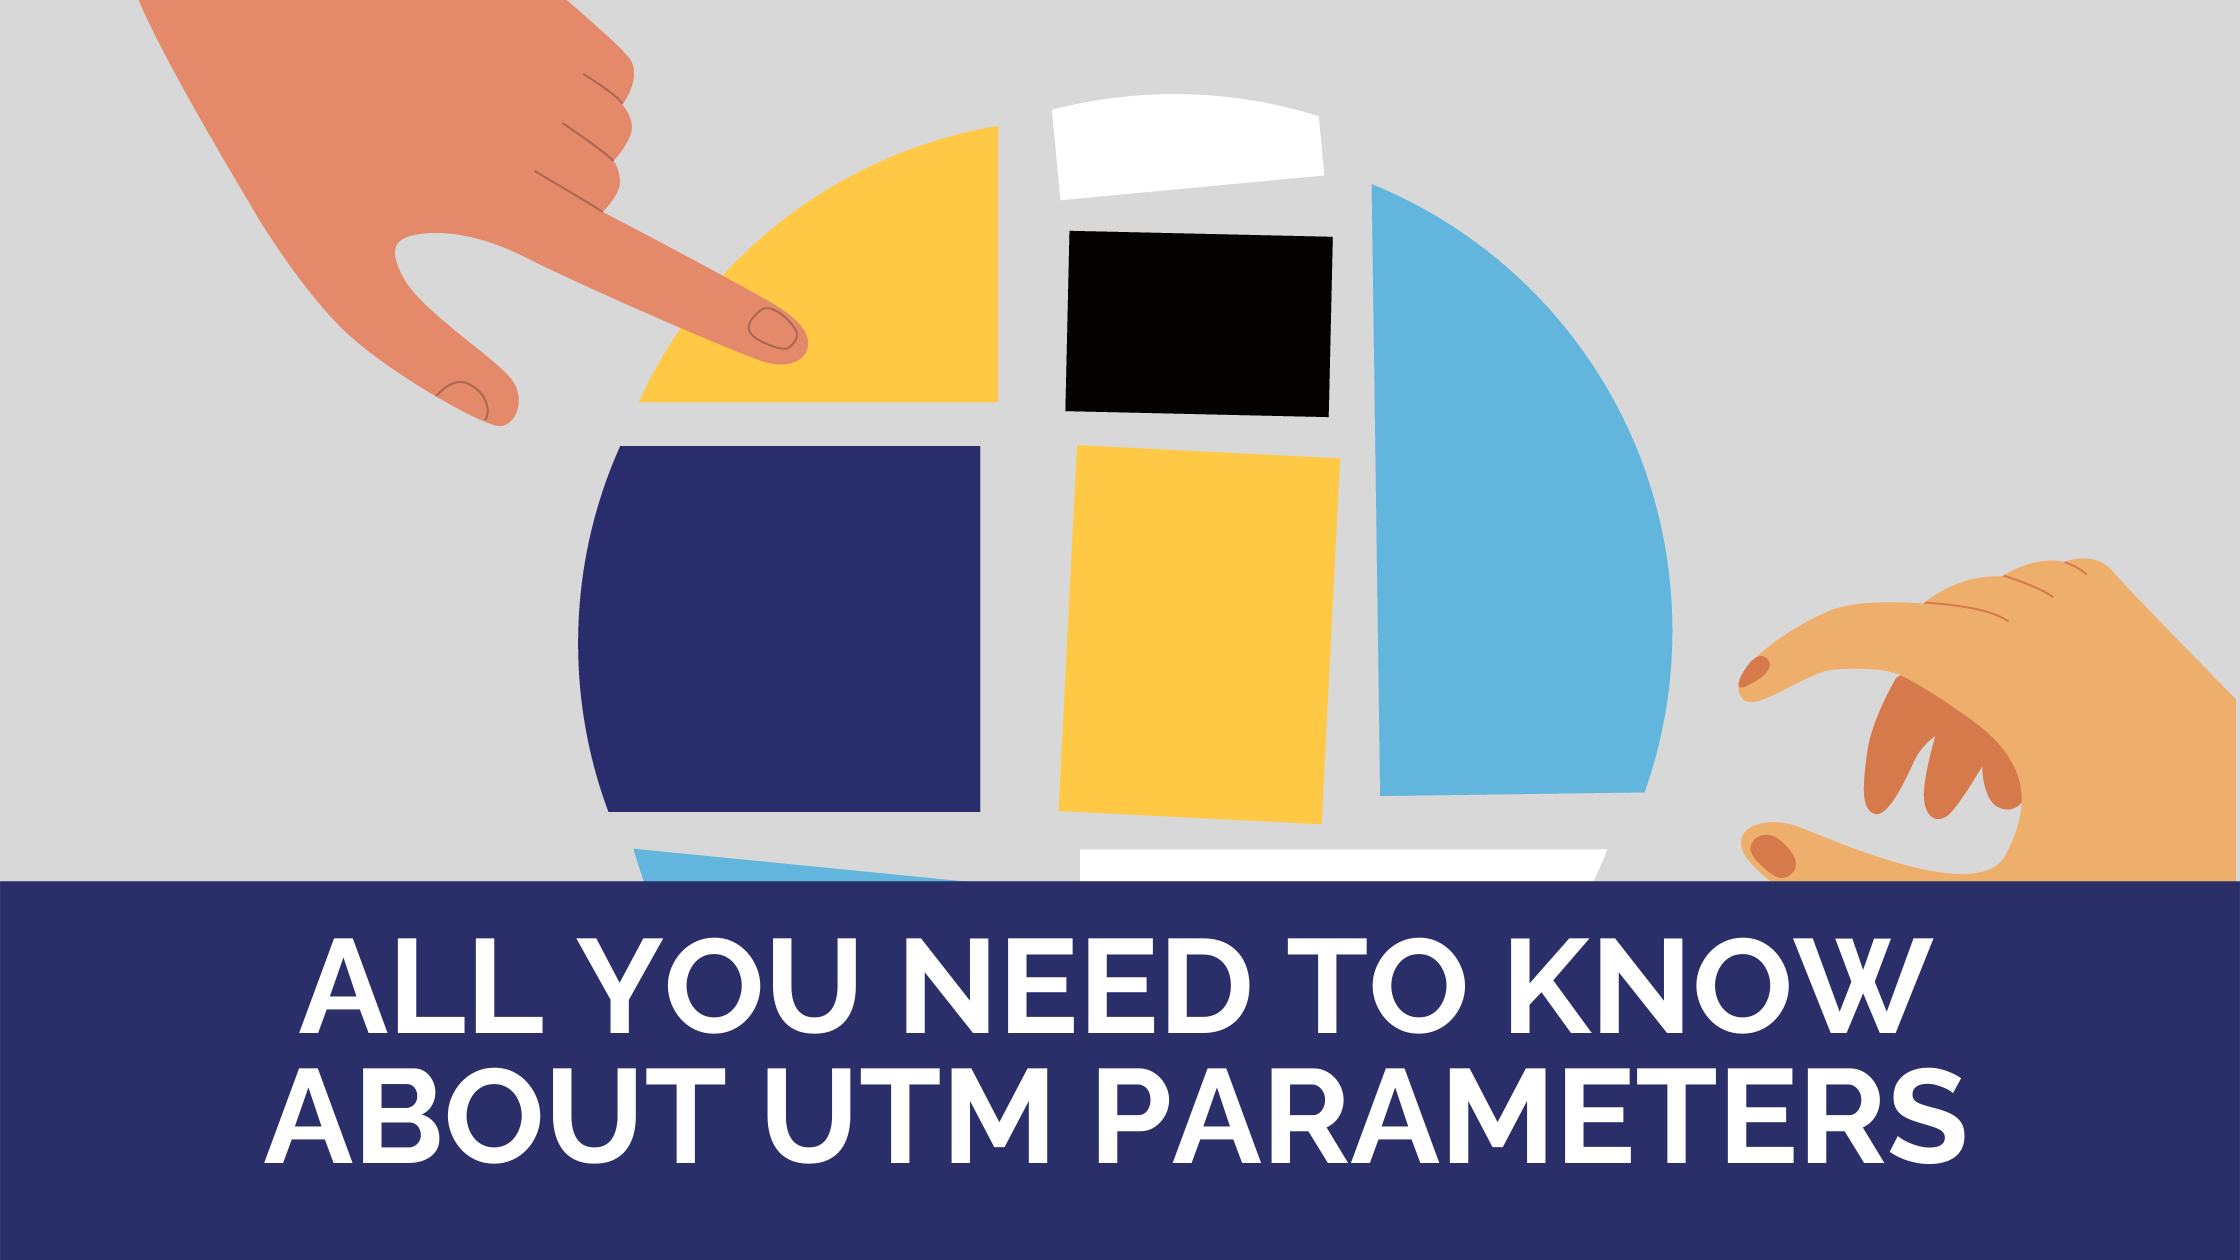 All you need to know about UTM parameters